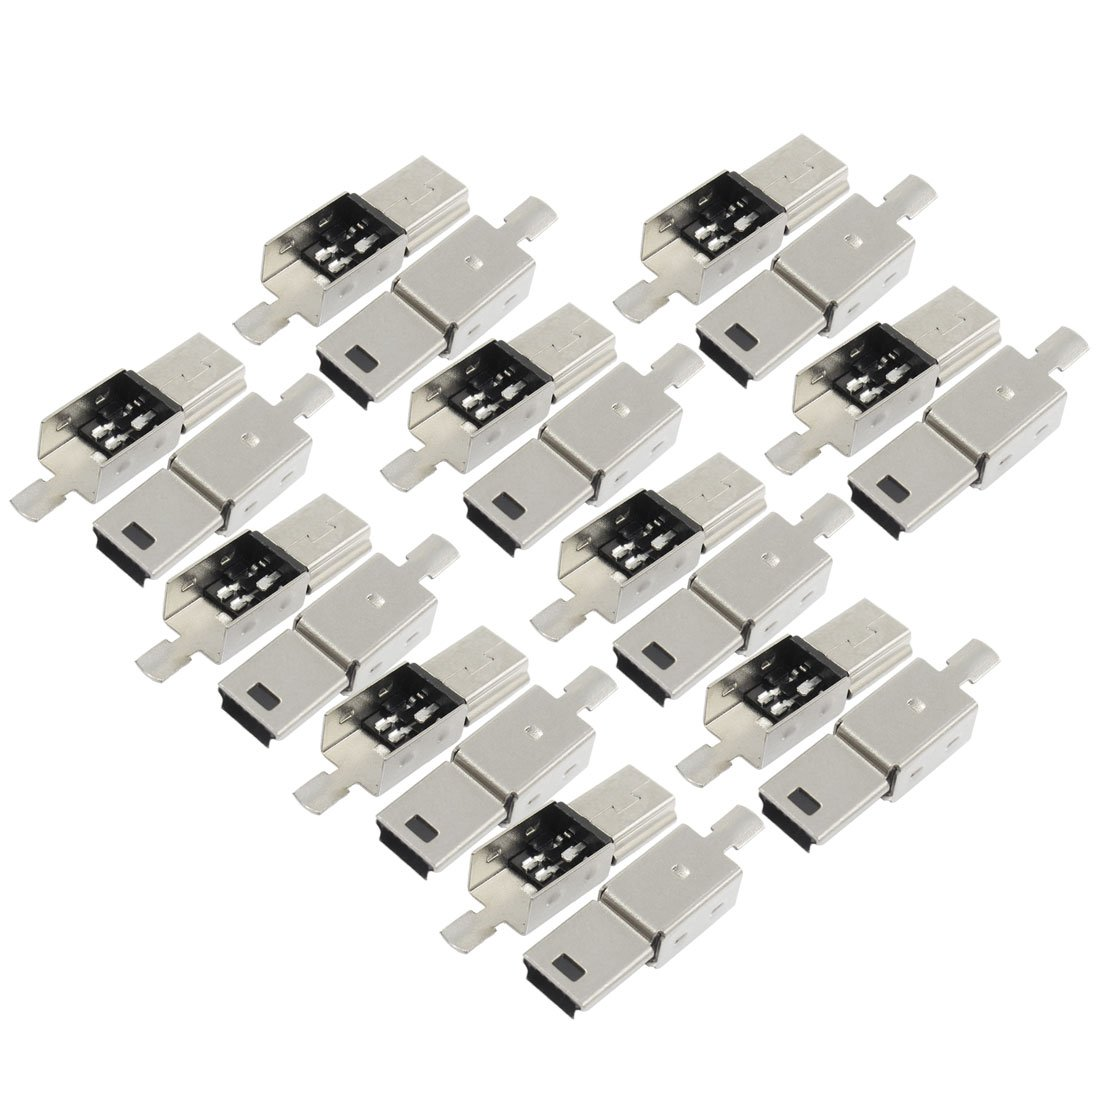 Amazon 10 pcs mini usb 5 pin type b male connector port amazon 10 pcs mini usb 5 pin type b male connector port solder plug jack computers accessories sciox Image collections